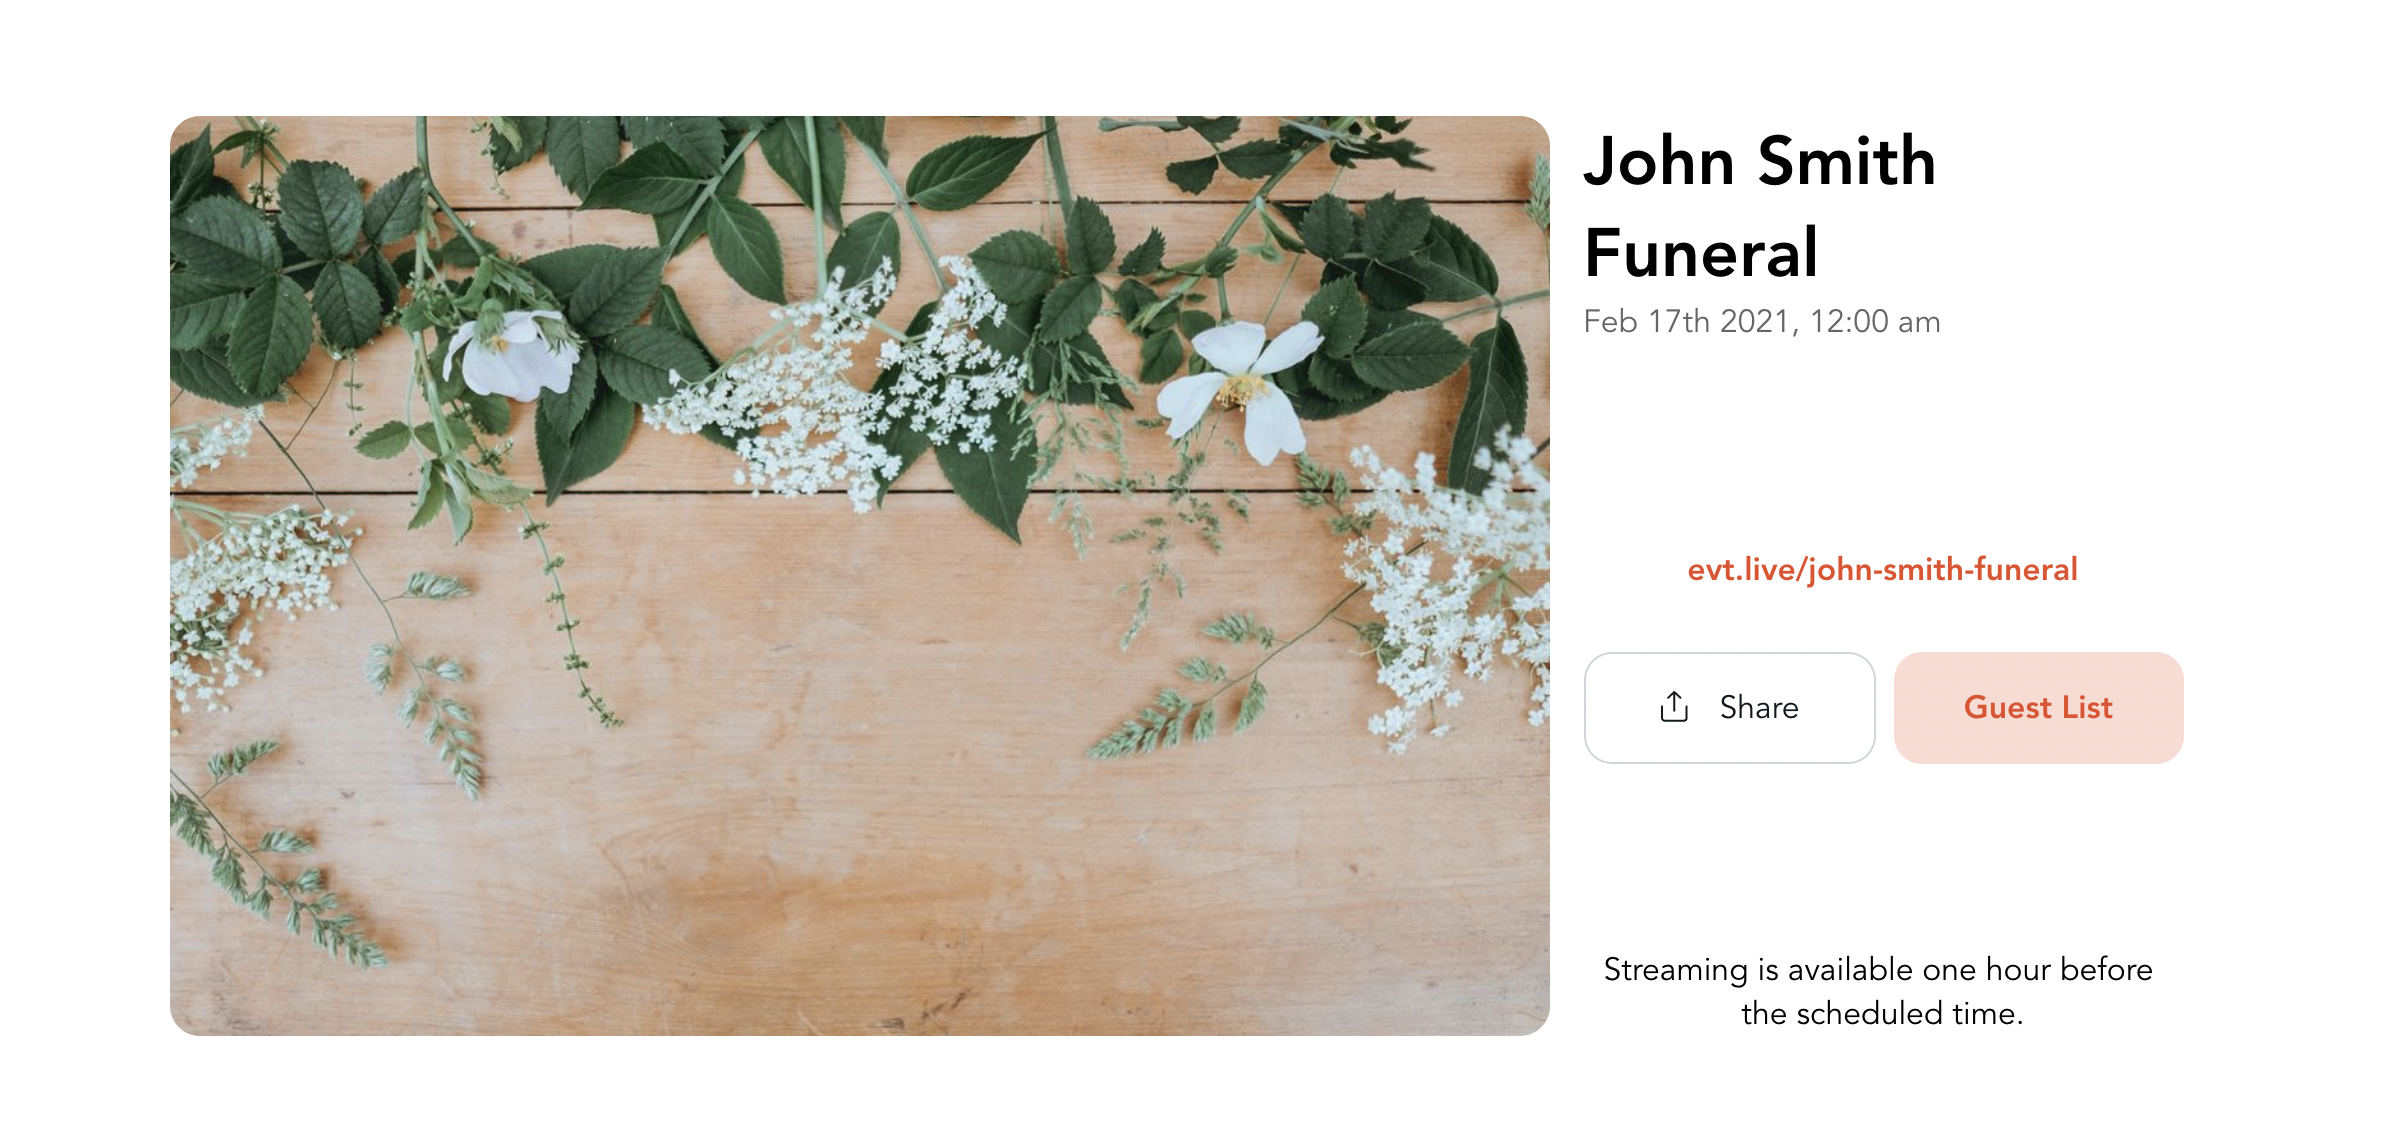 Affordable live streaming solution for funerals